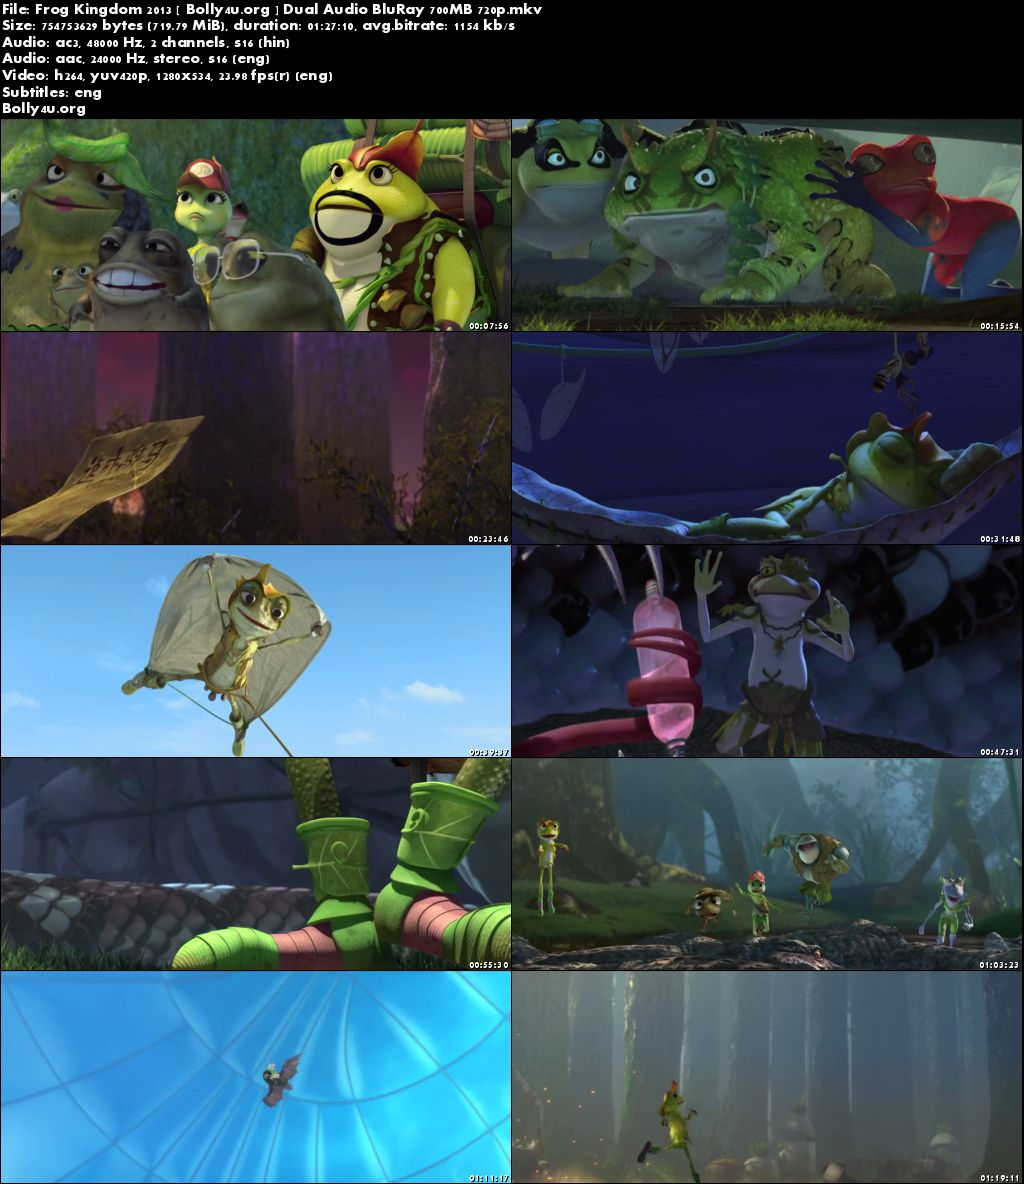 Frog Kingdom 2013 BRRip 280MB Hindi Dual Audio 480p Download